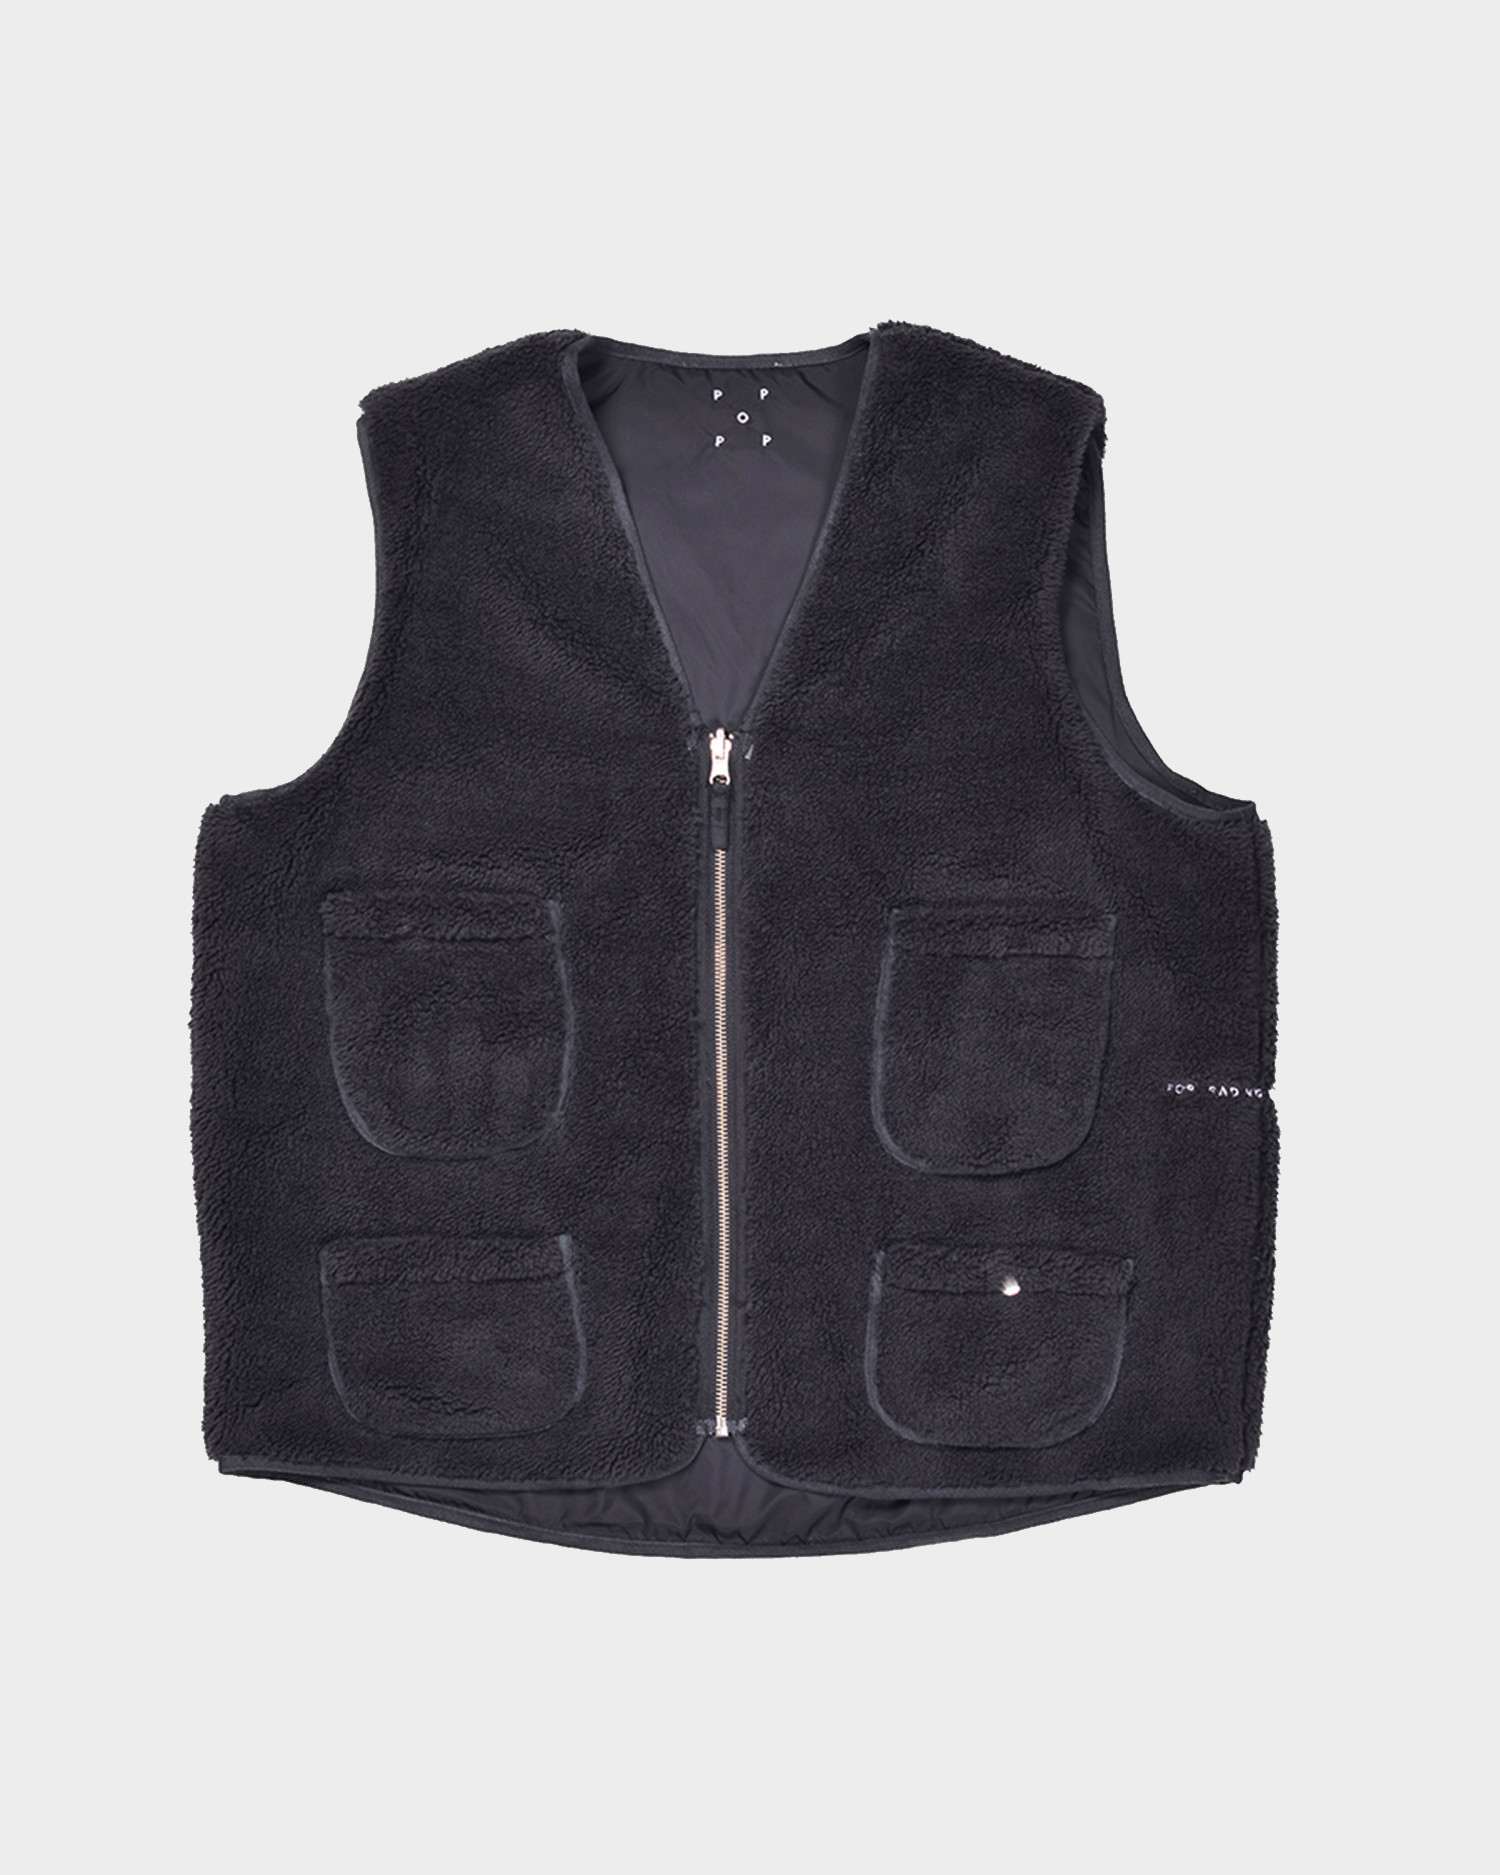 Pop Trading Company Harold Reversible Vest Anthracite